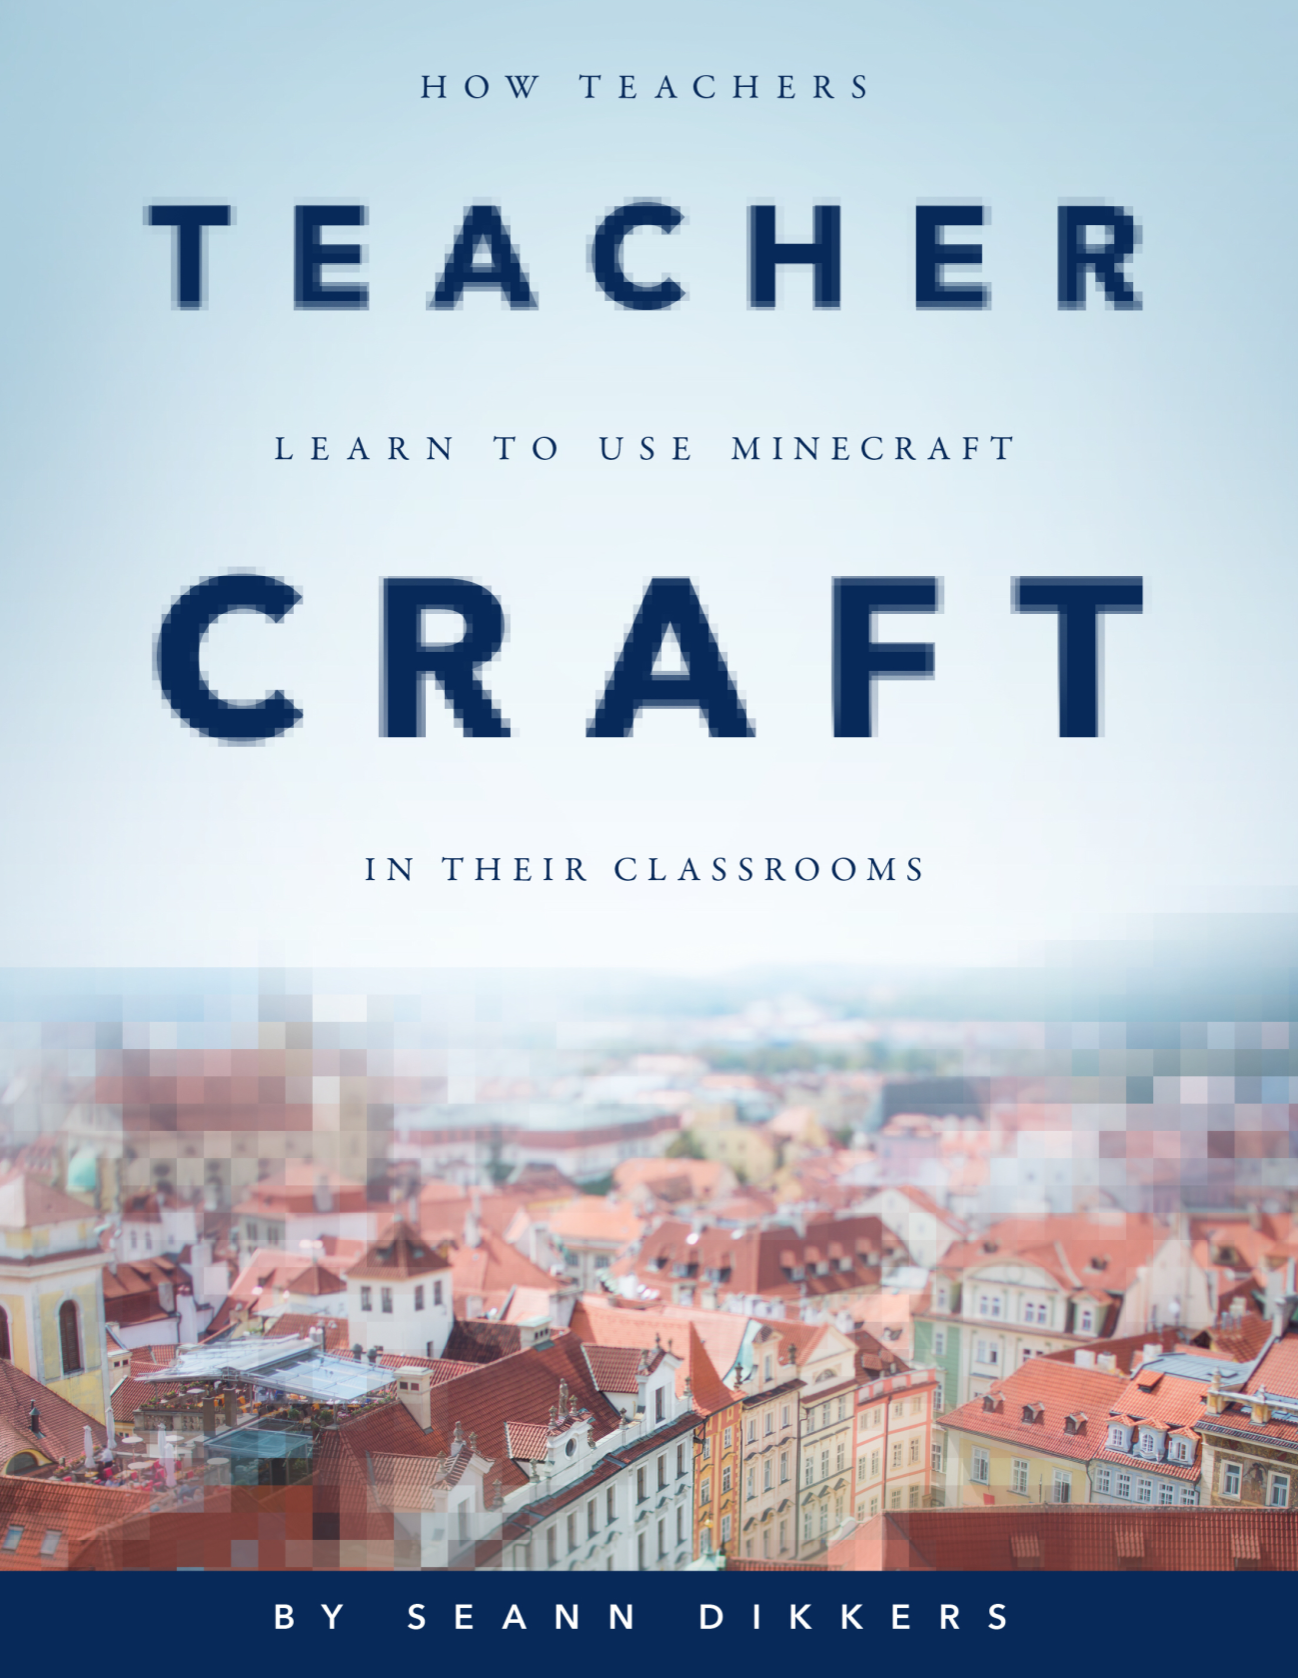 teachercraft